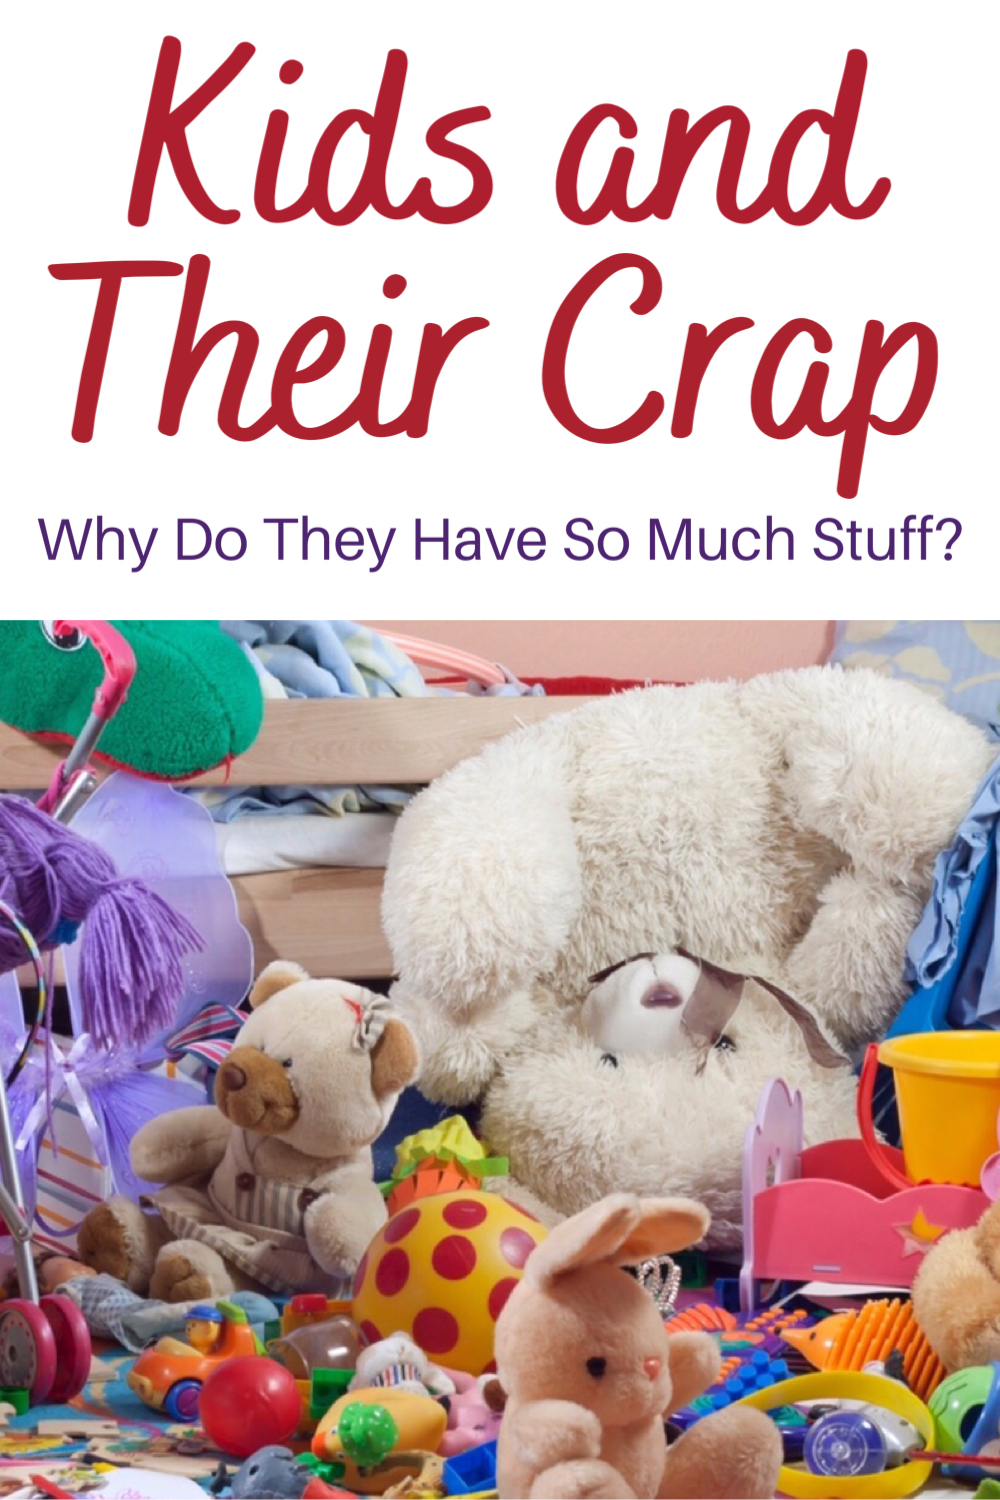 Kids and their crap: why do they have so much stuff?